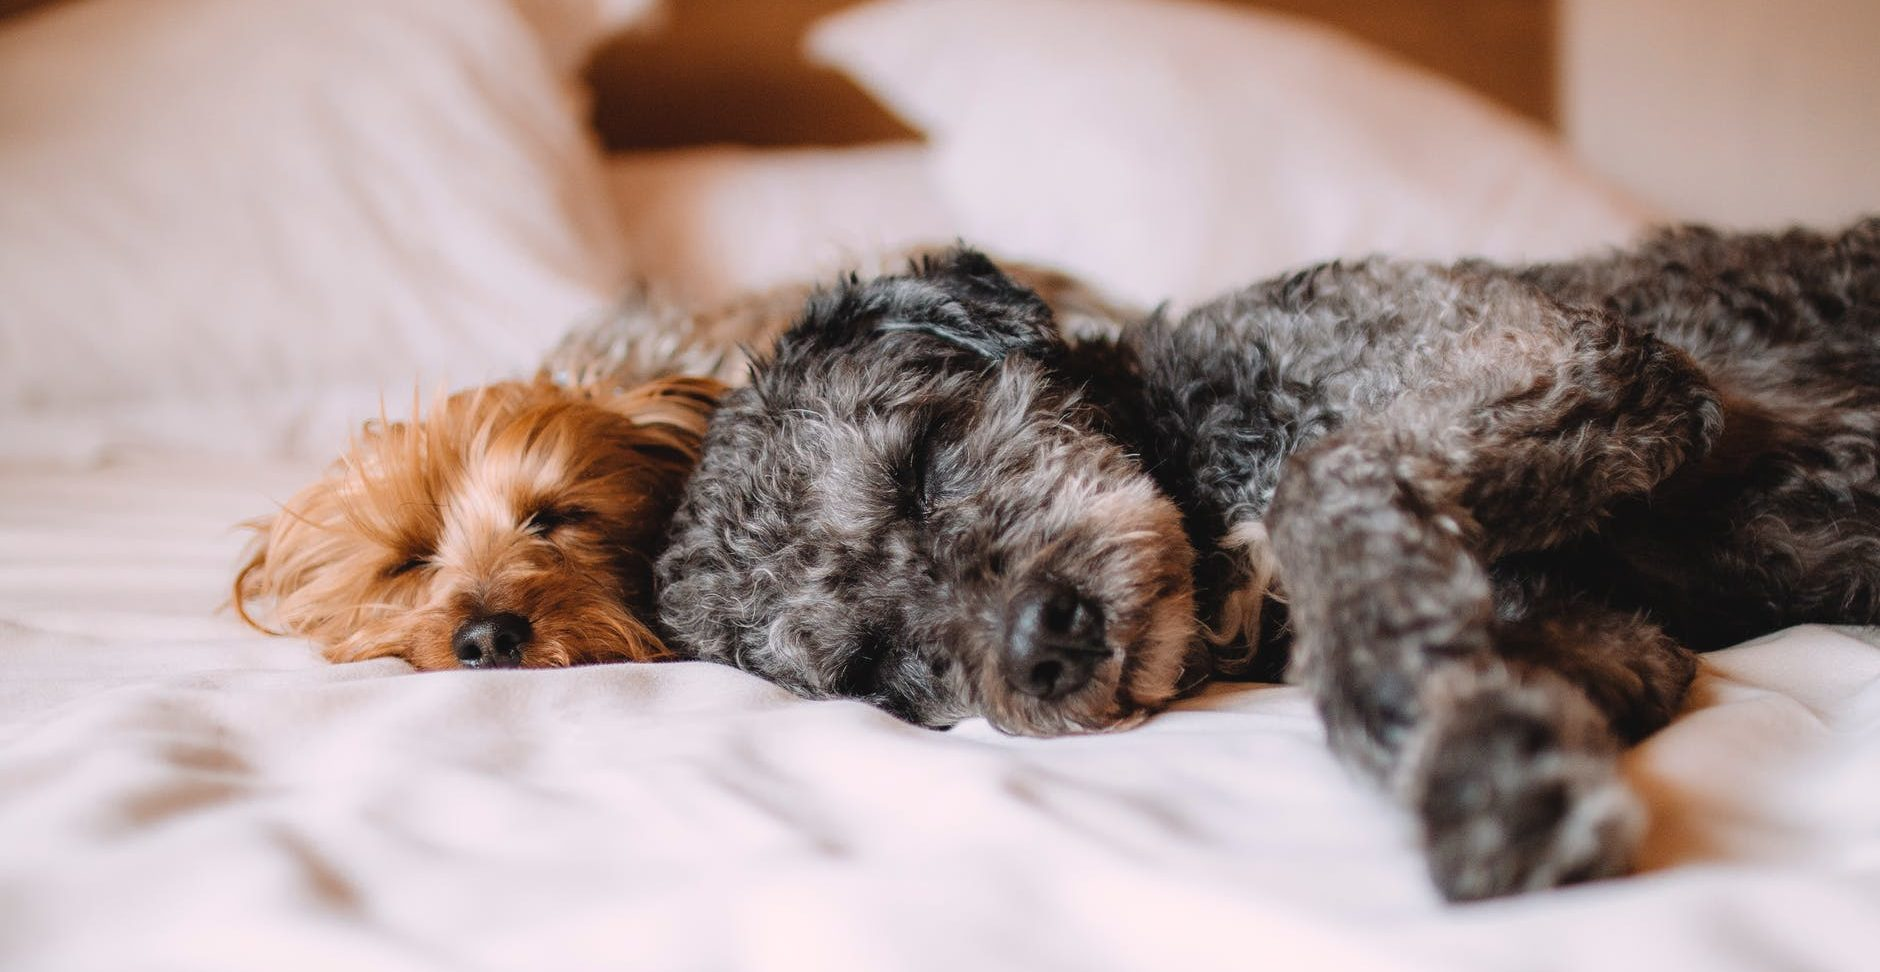 A-Z of dog wellbeing: Quiet time and sleep